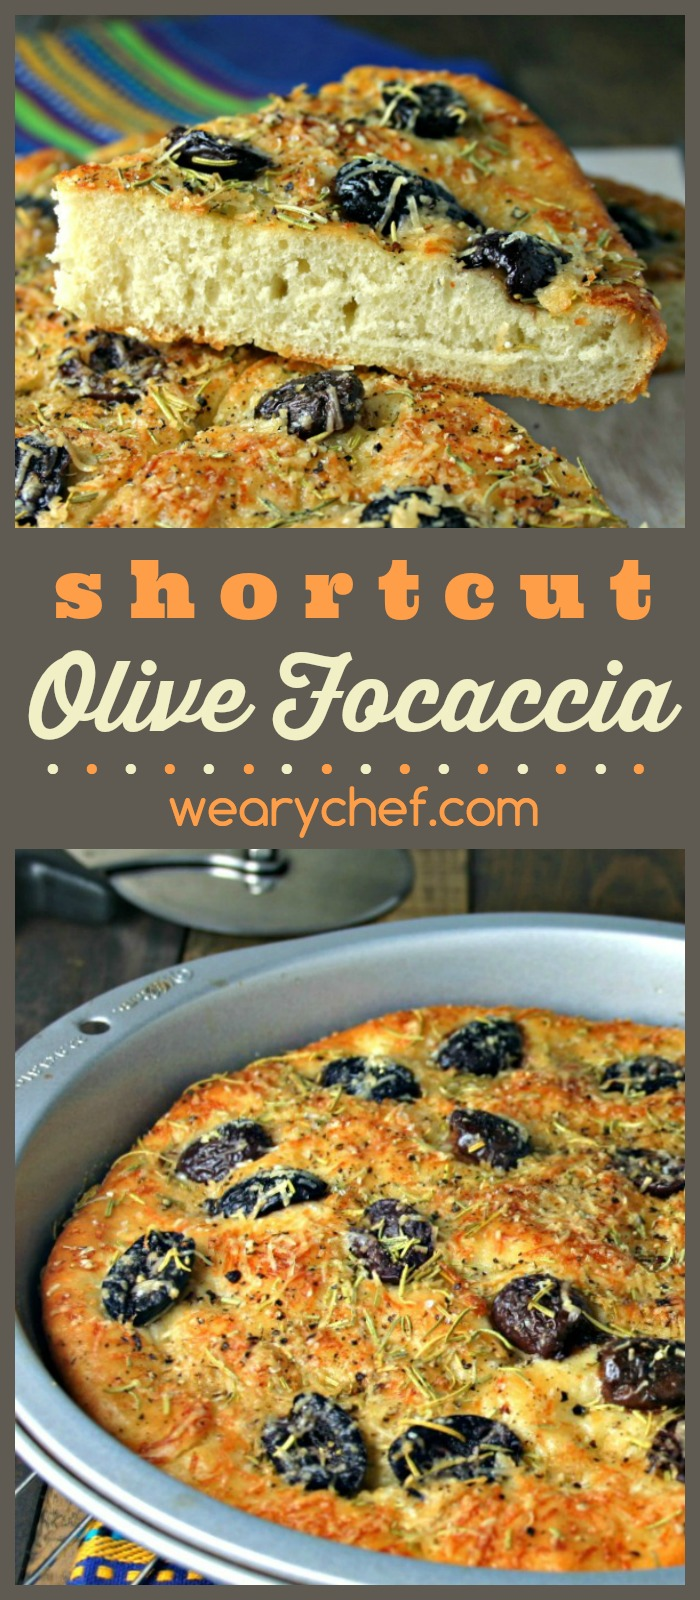 Use premade pizza dough for an easy shortcut to perfect homemade focaccia!